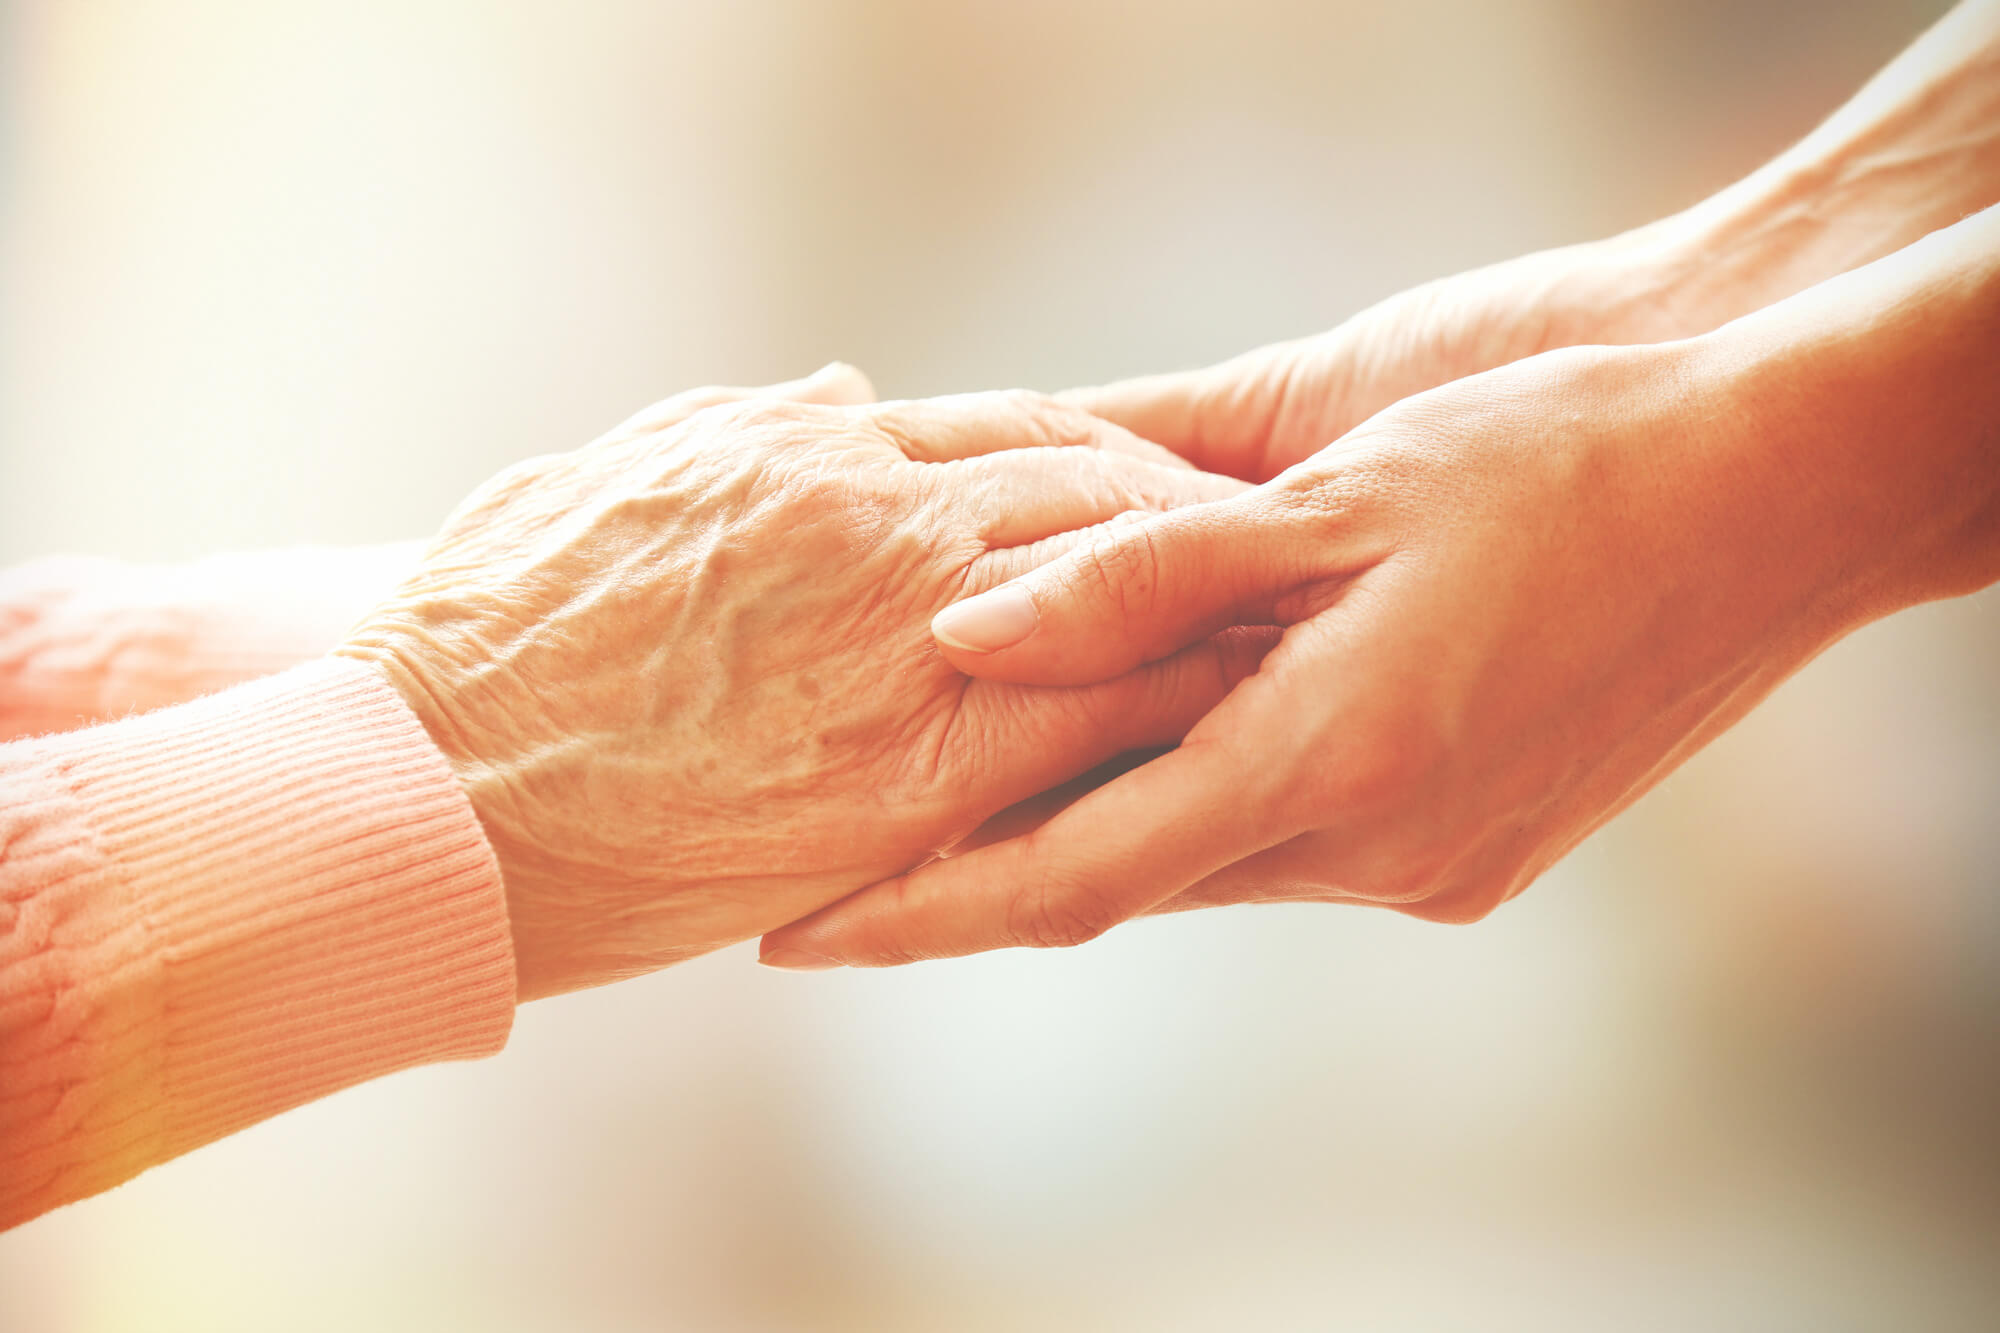 do my parents need home care?